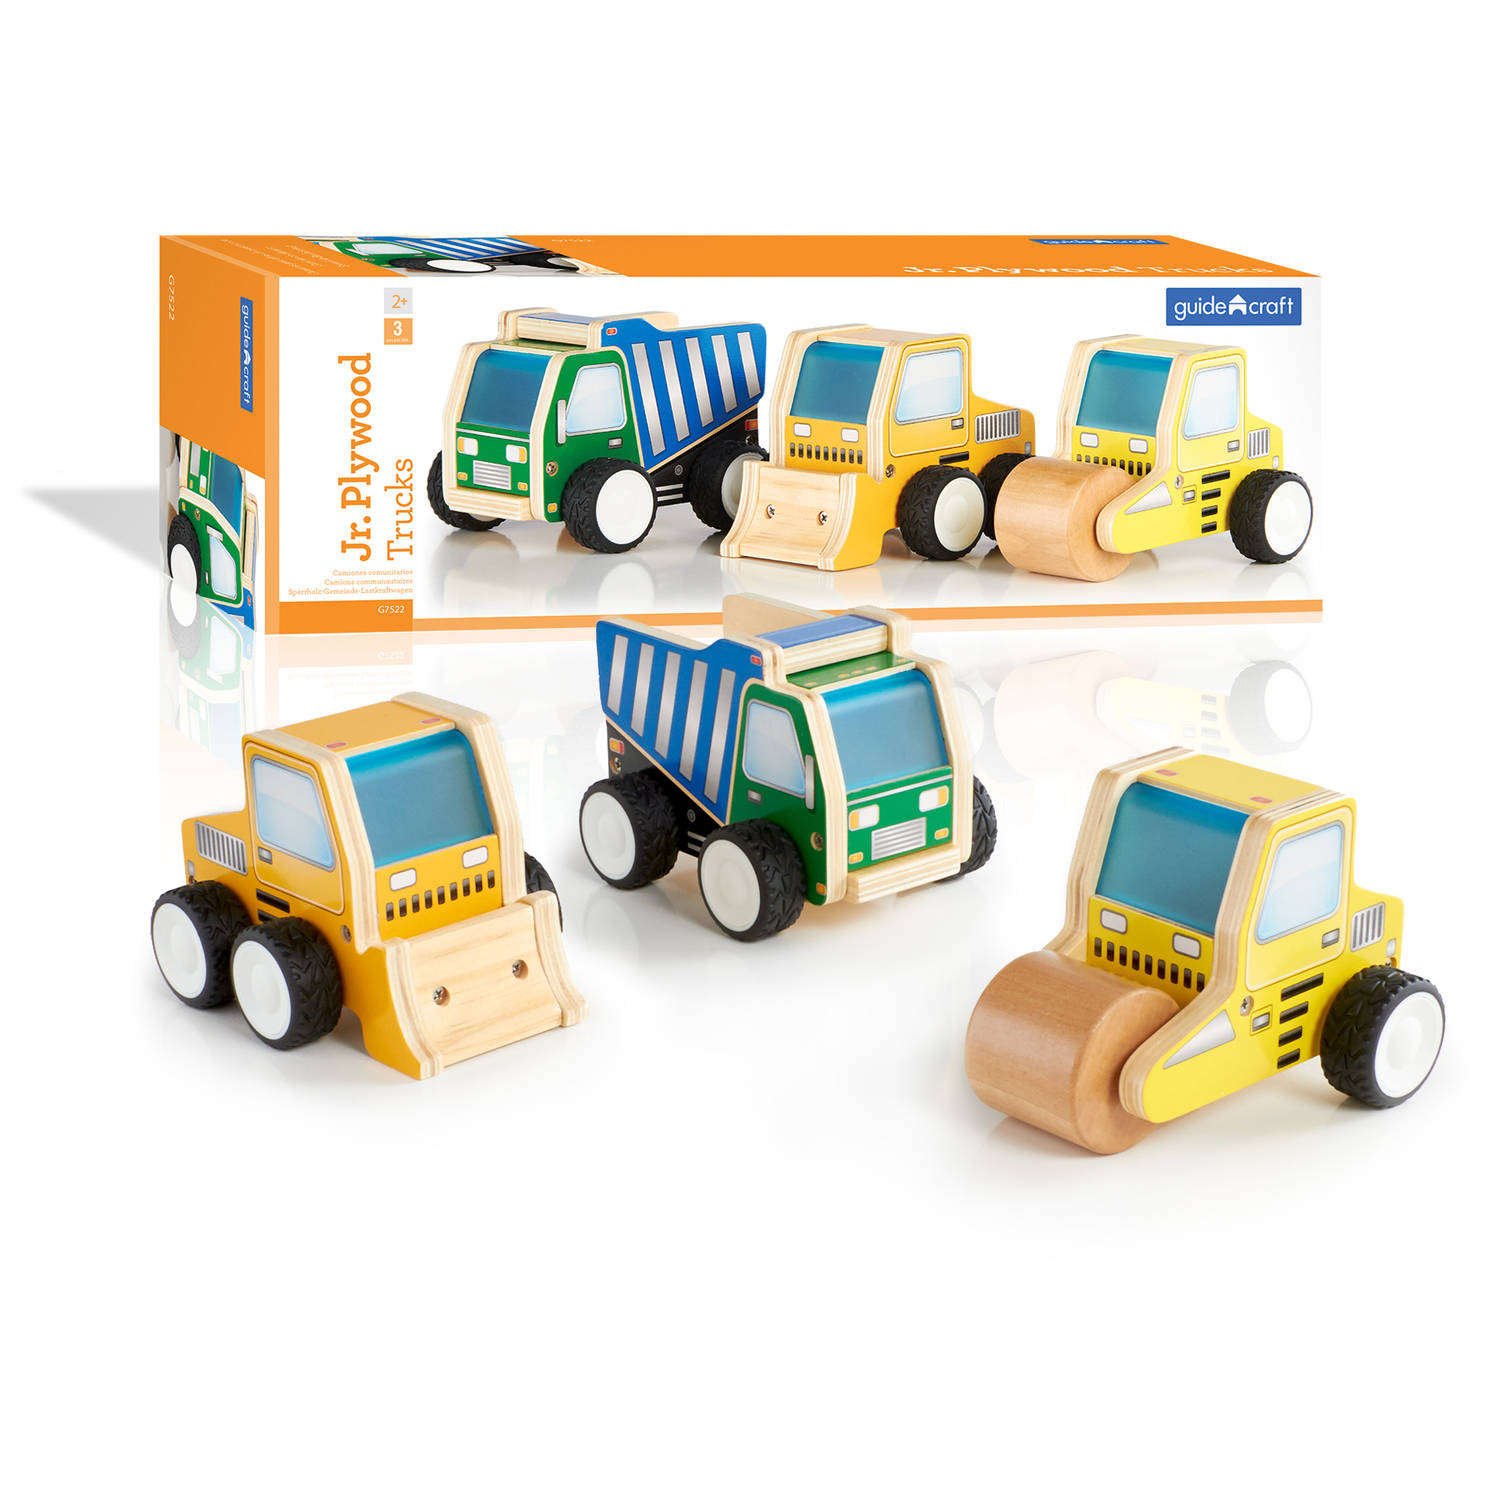 Guidecraft Jr. Plywood Construction Trucks